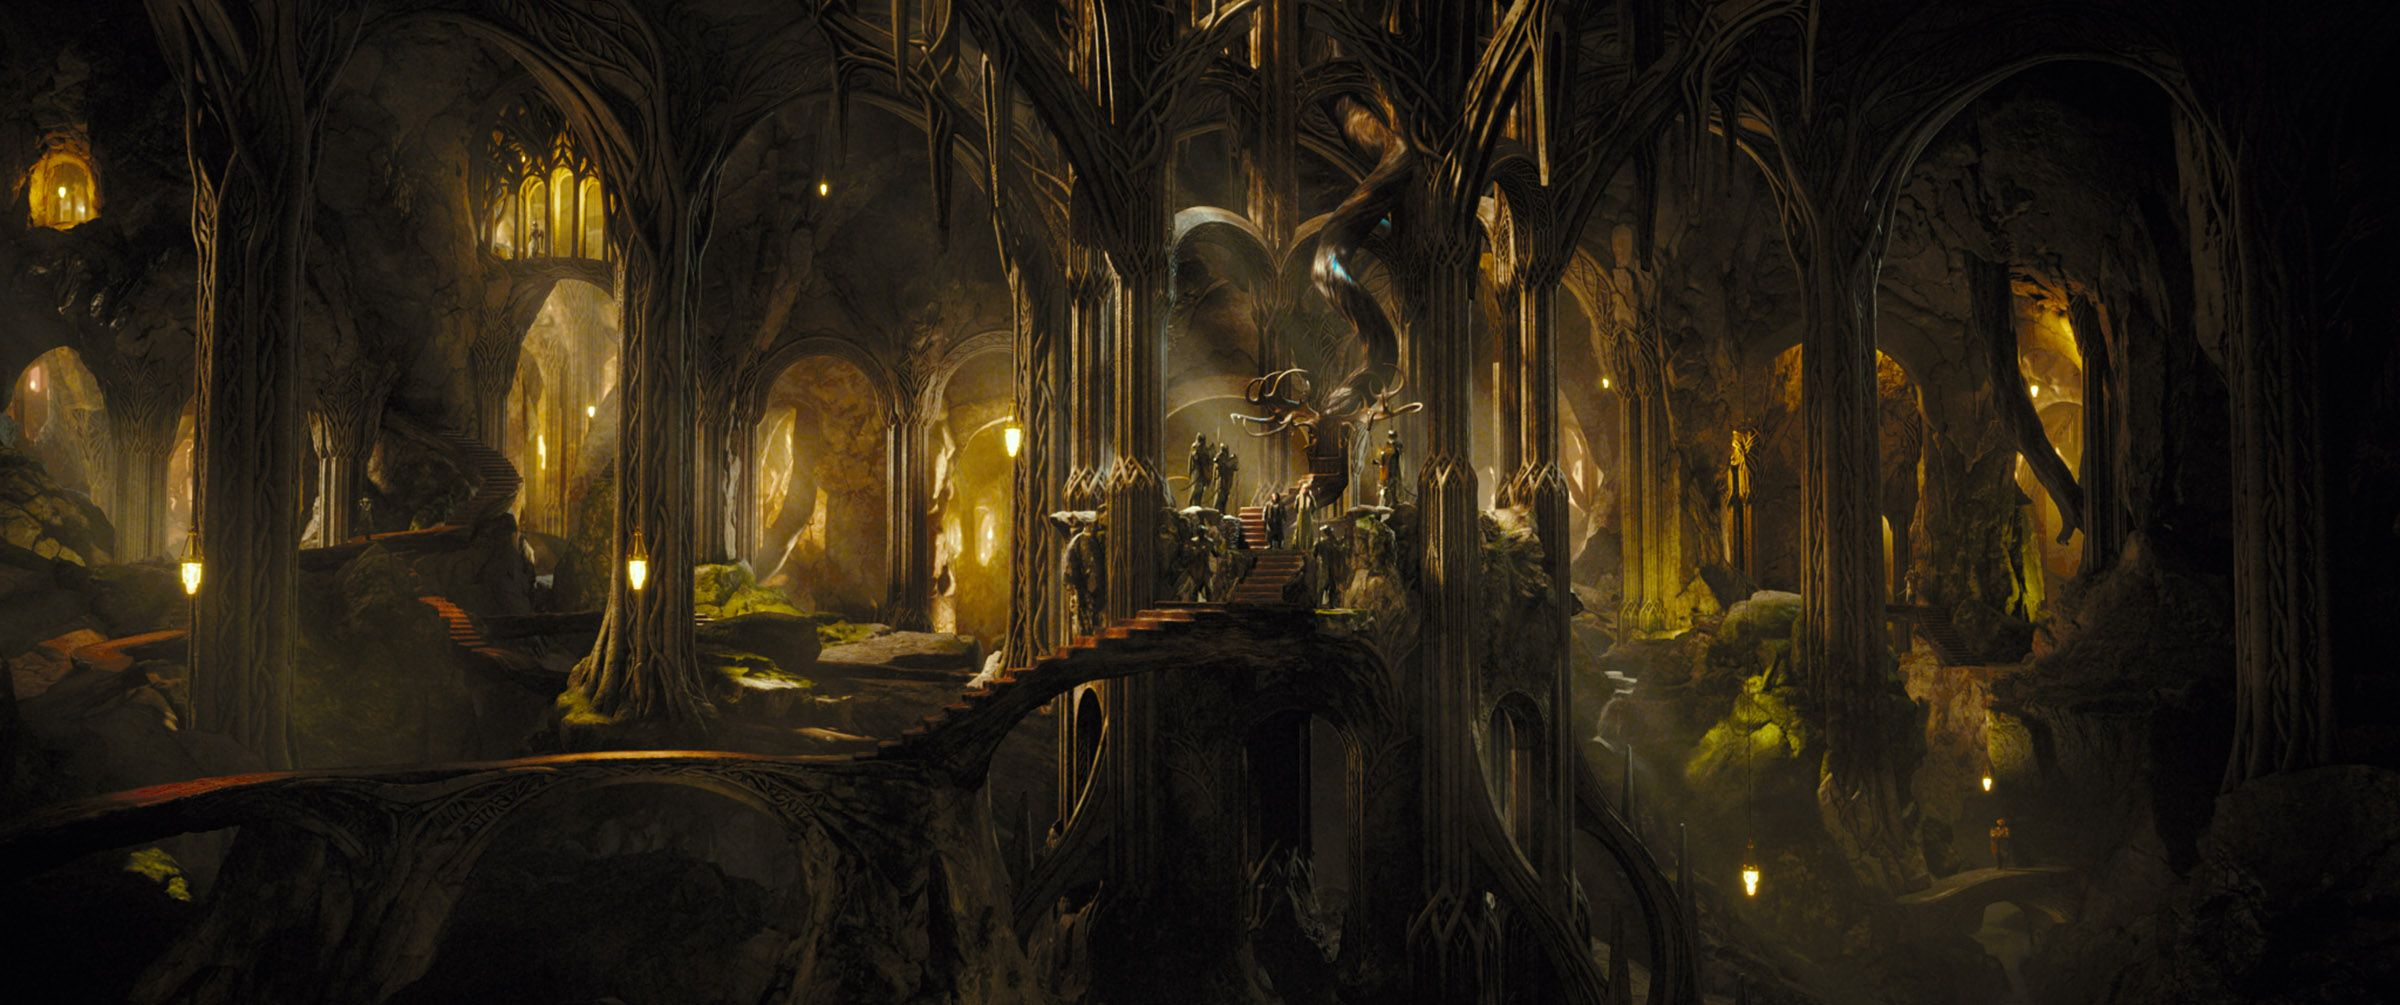 Hobbit Desolation Of Smaug Image